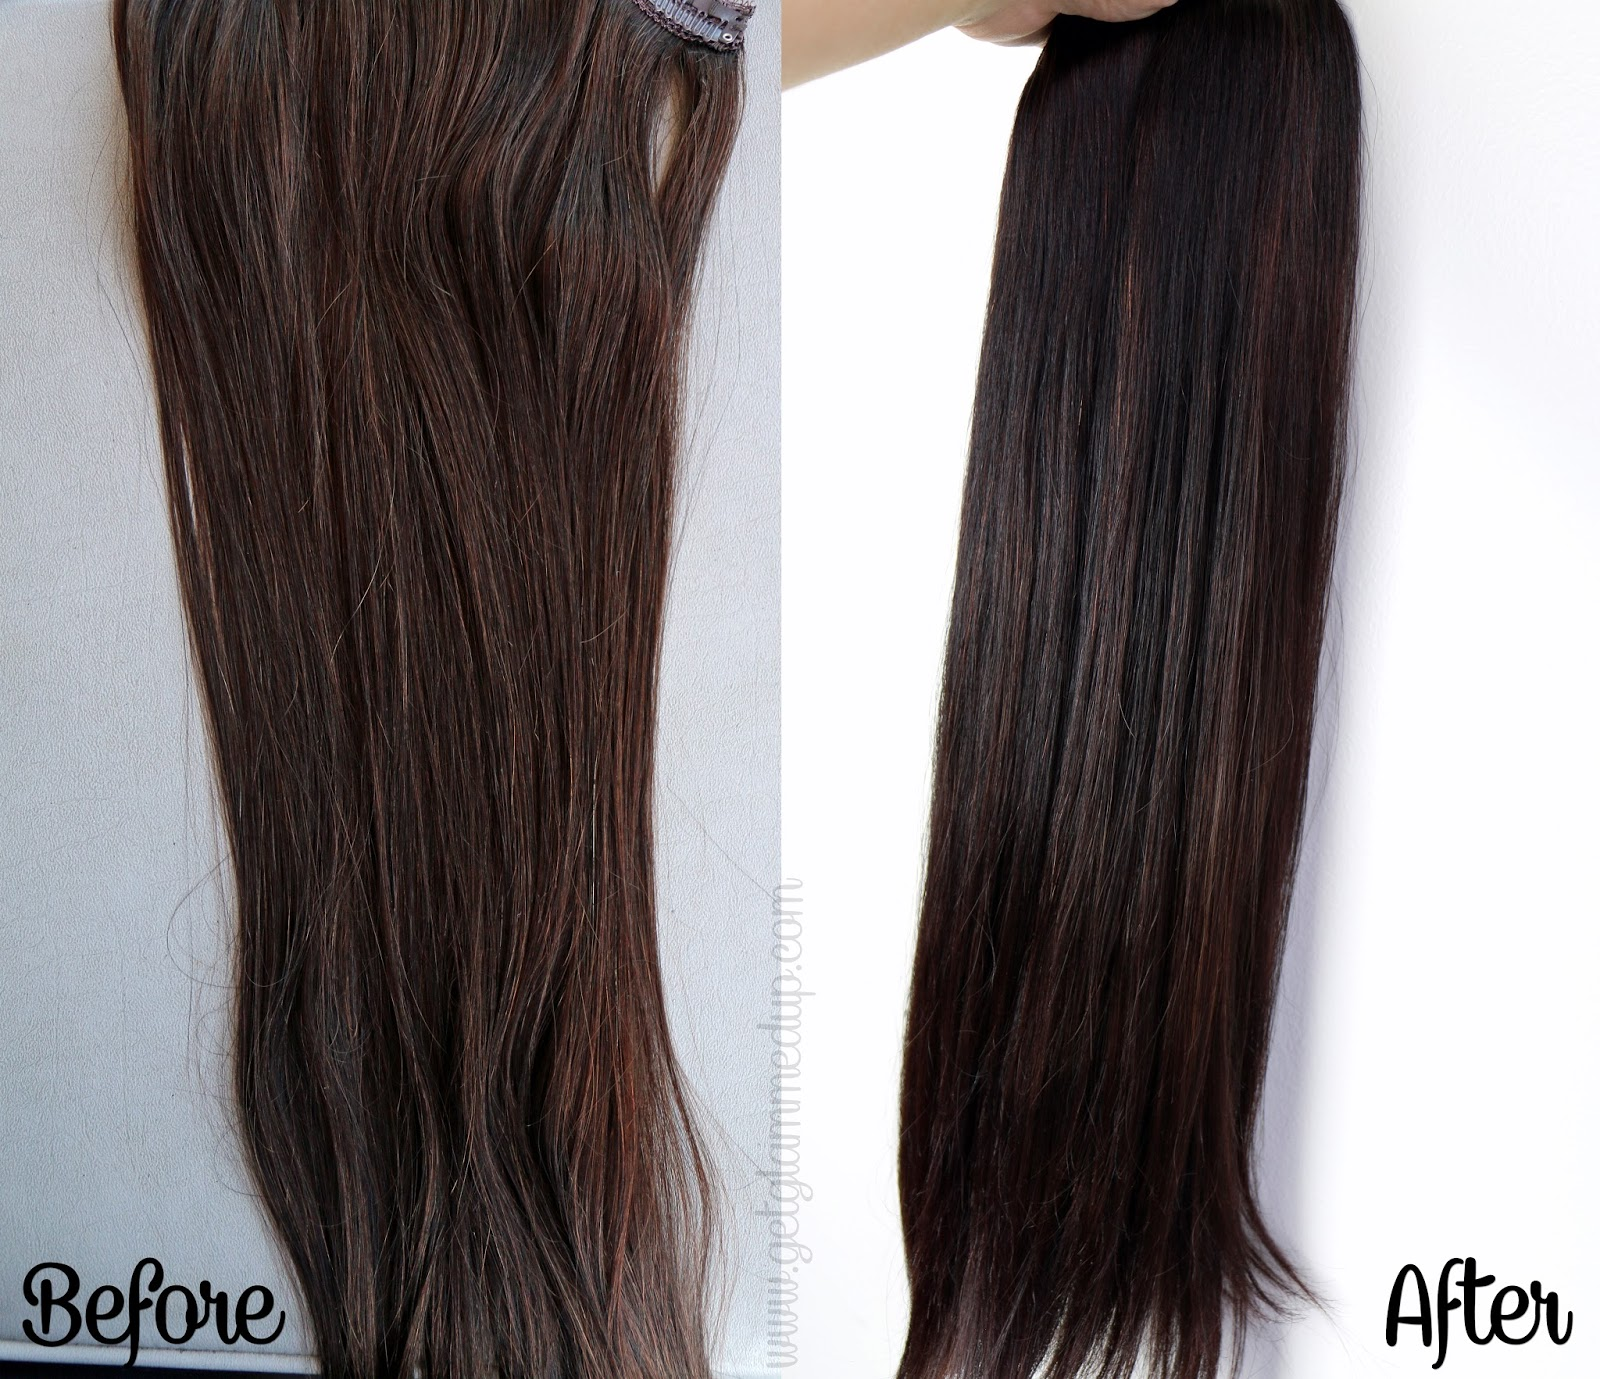 Video my fantasy hair review how to care for and clip in hair before and after coloring my fantasy hair extensions in dark chocolate pmusecretfo Gallery